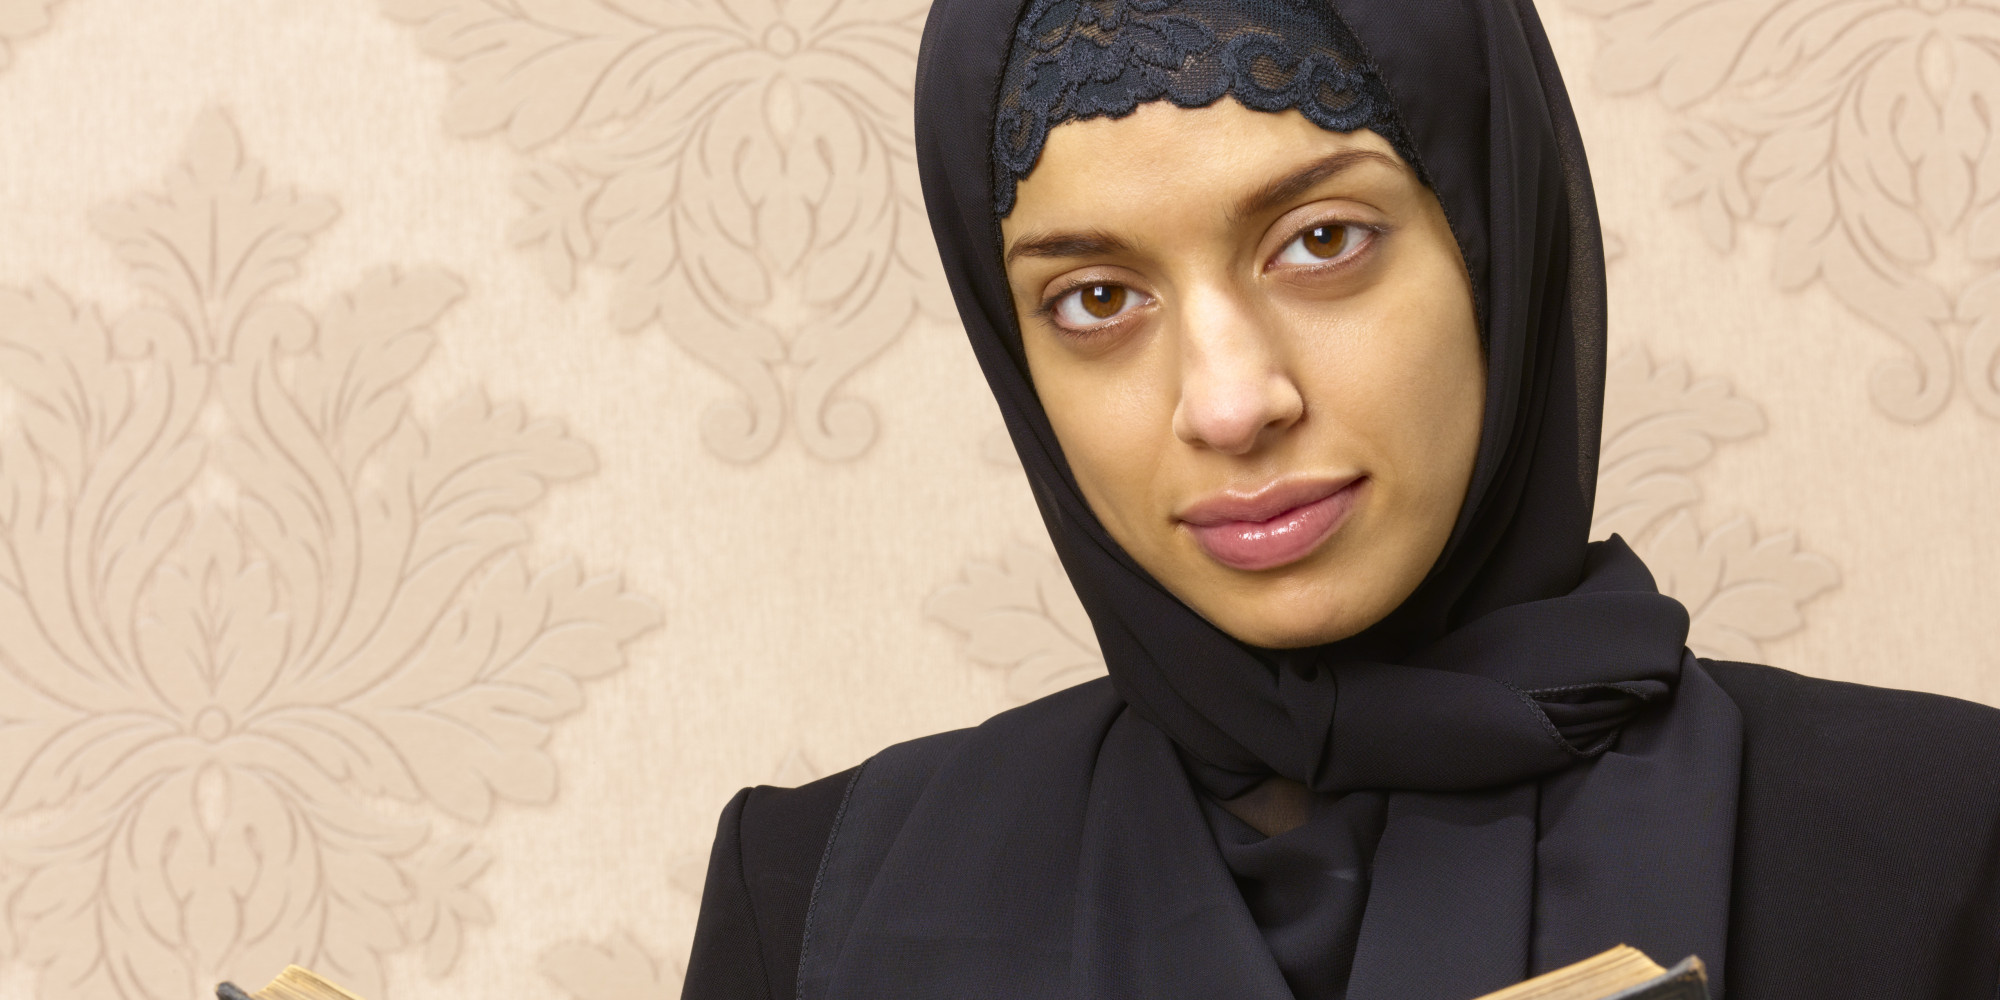 muslim single women in la crosse 100% free online dating in la crosse 1,500,000 daily active members.